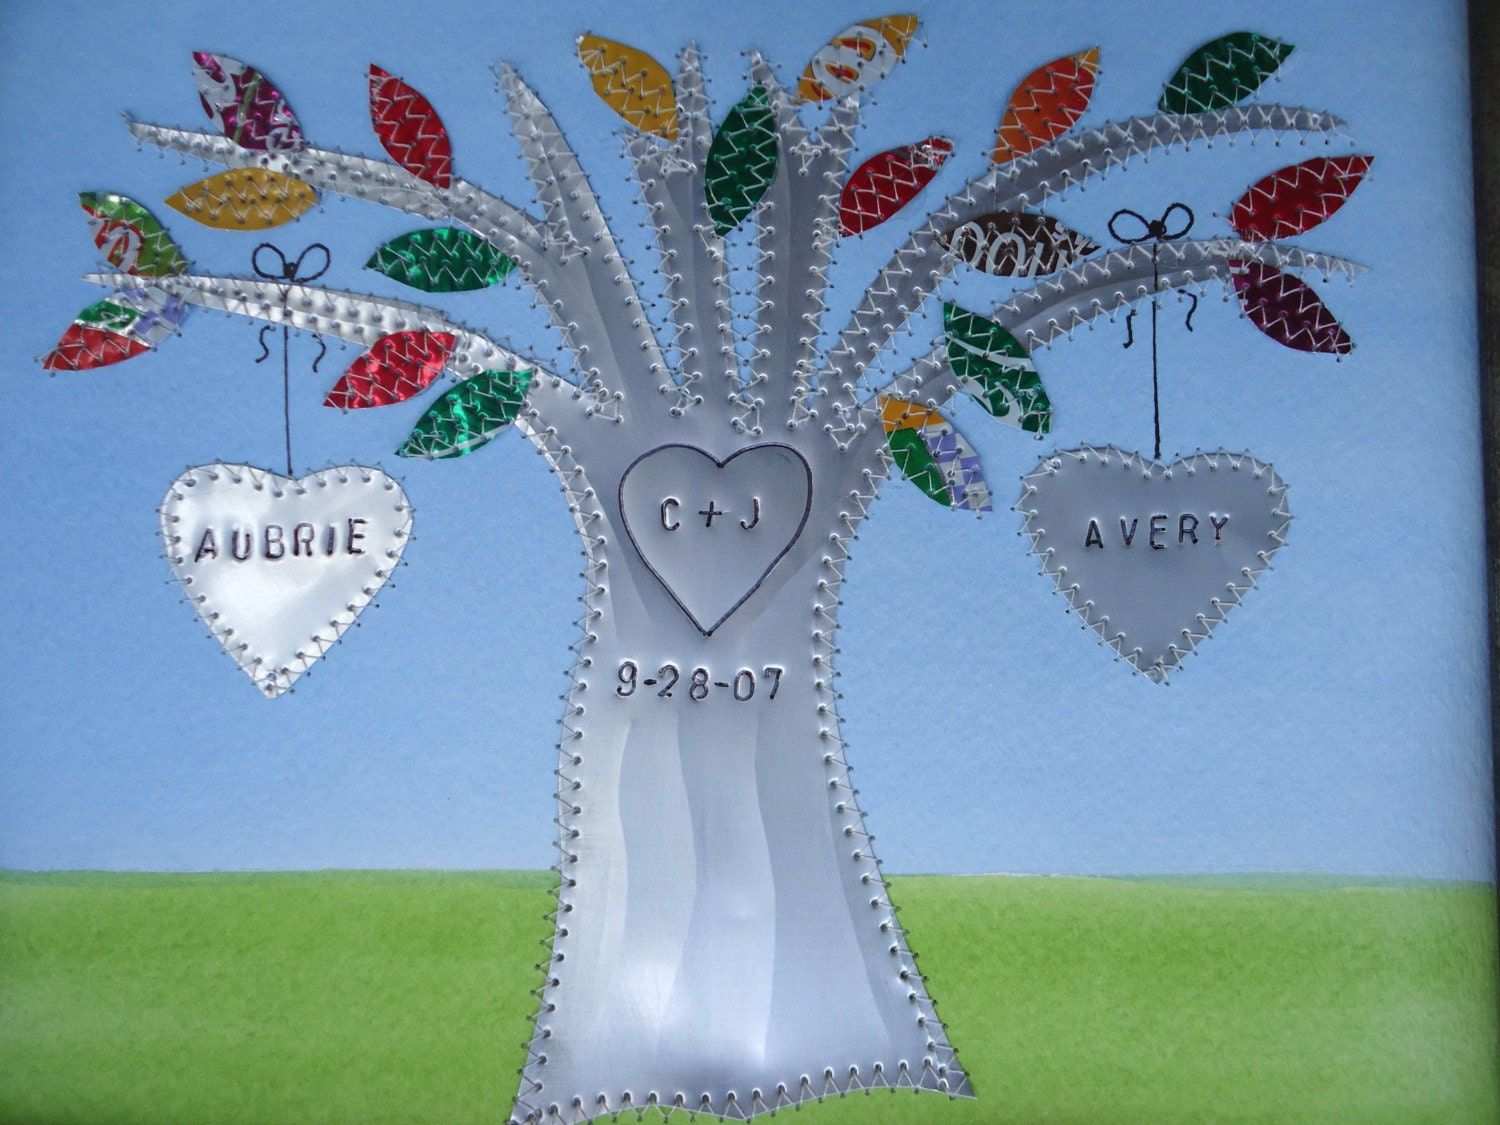 10 Years Wedding Anniversary Gift Ideas: 10 Year Wedding Anniversary Tin Anniversary Gift Hearts Family